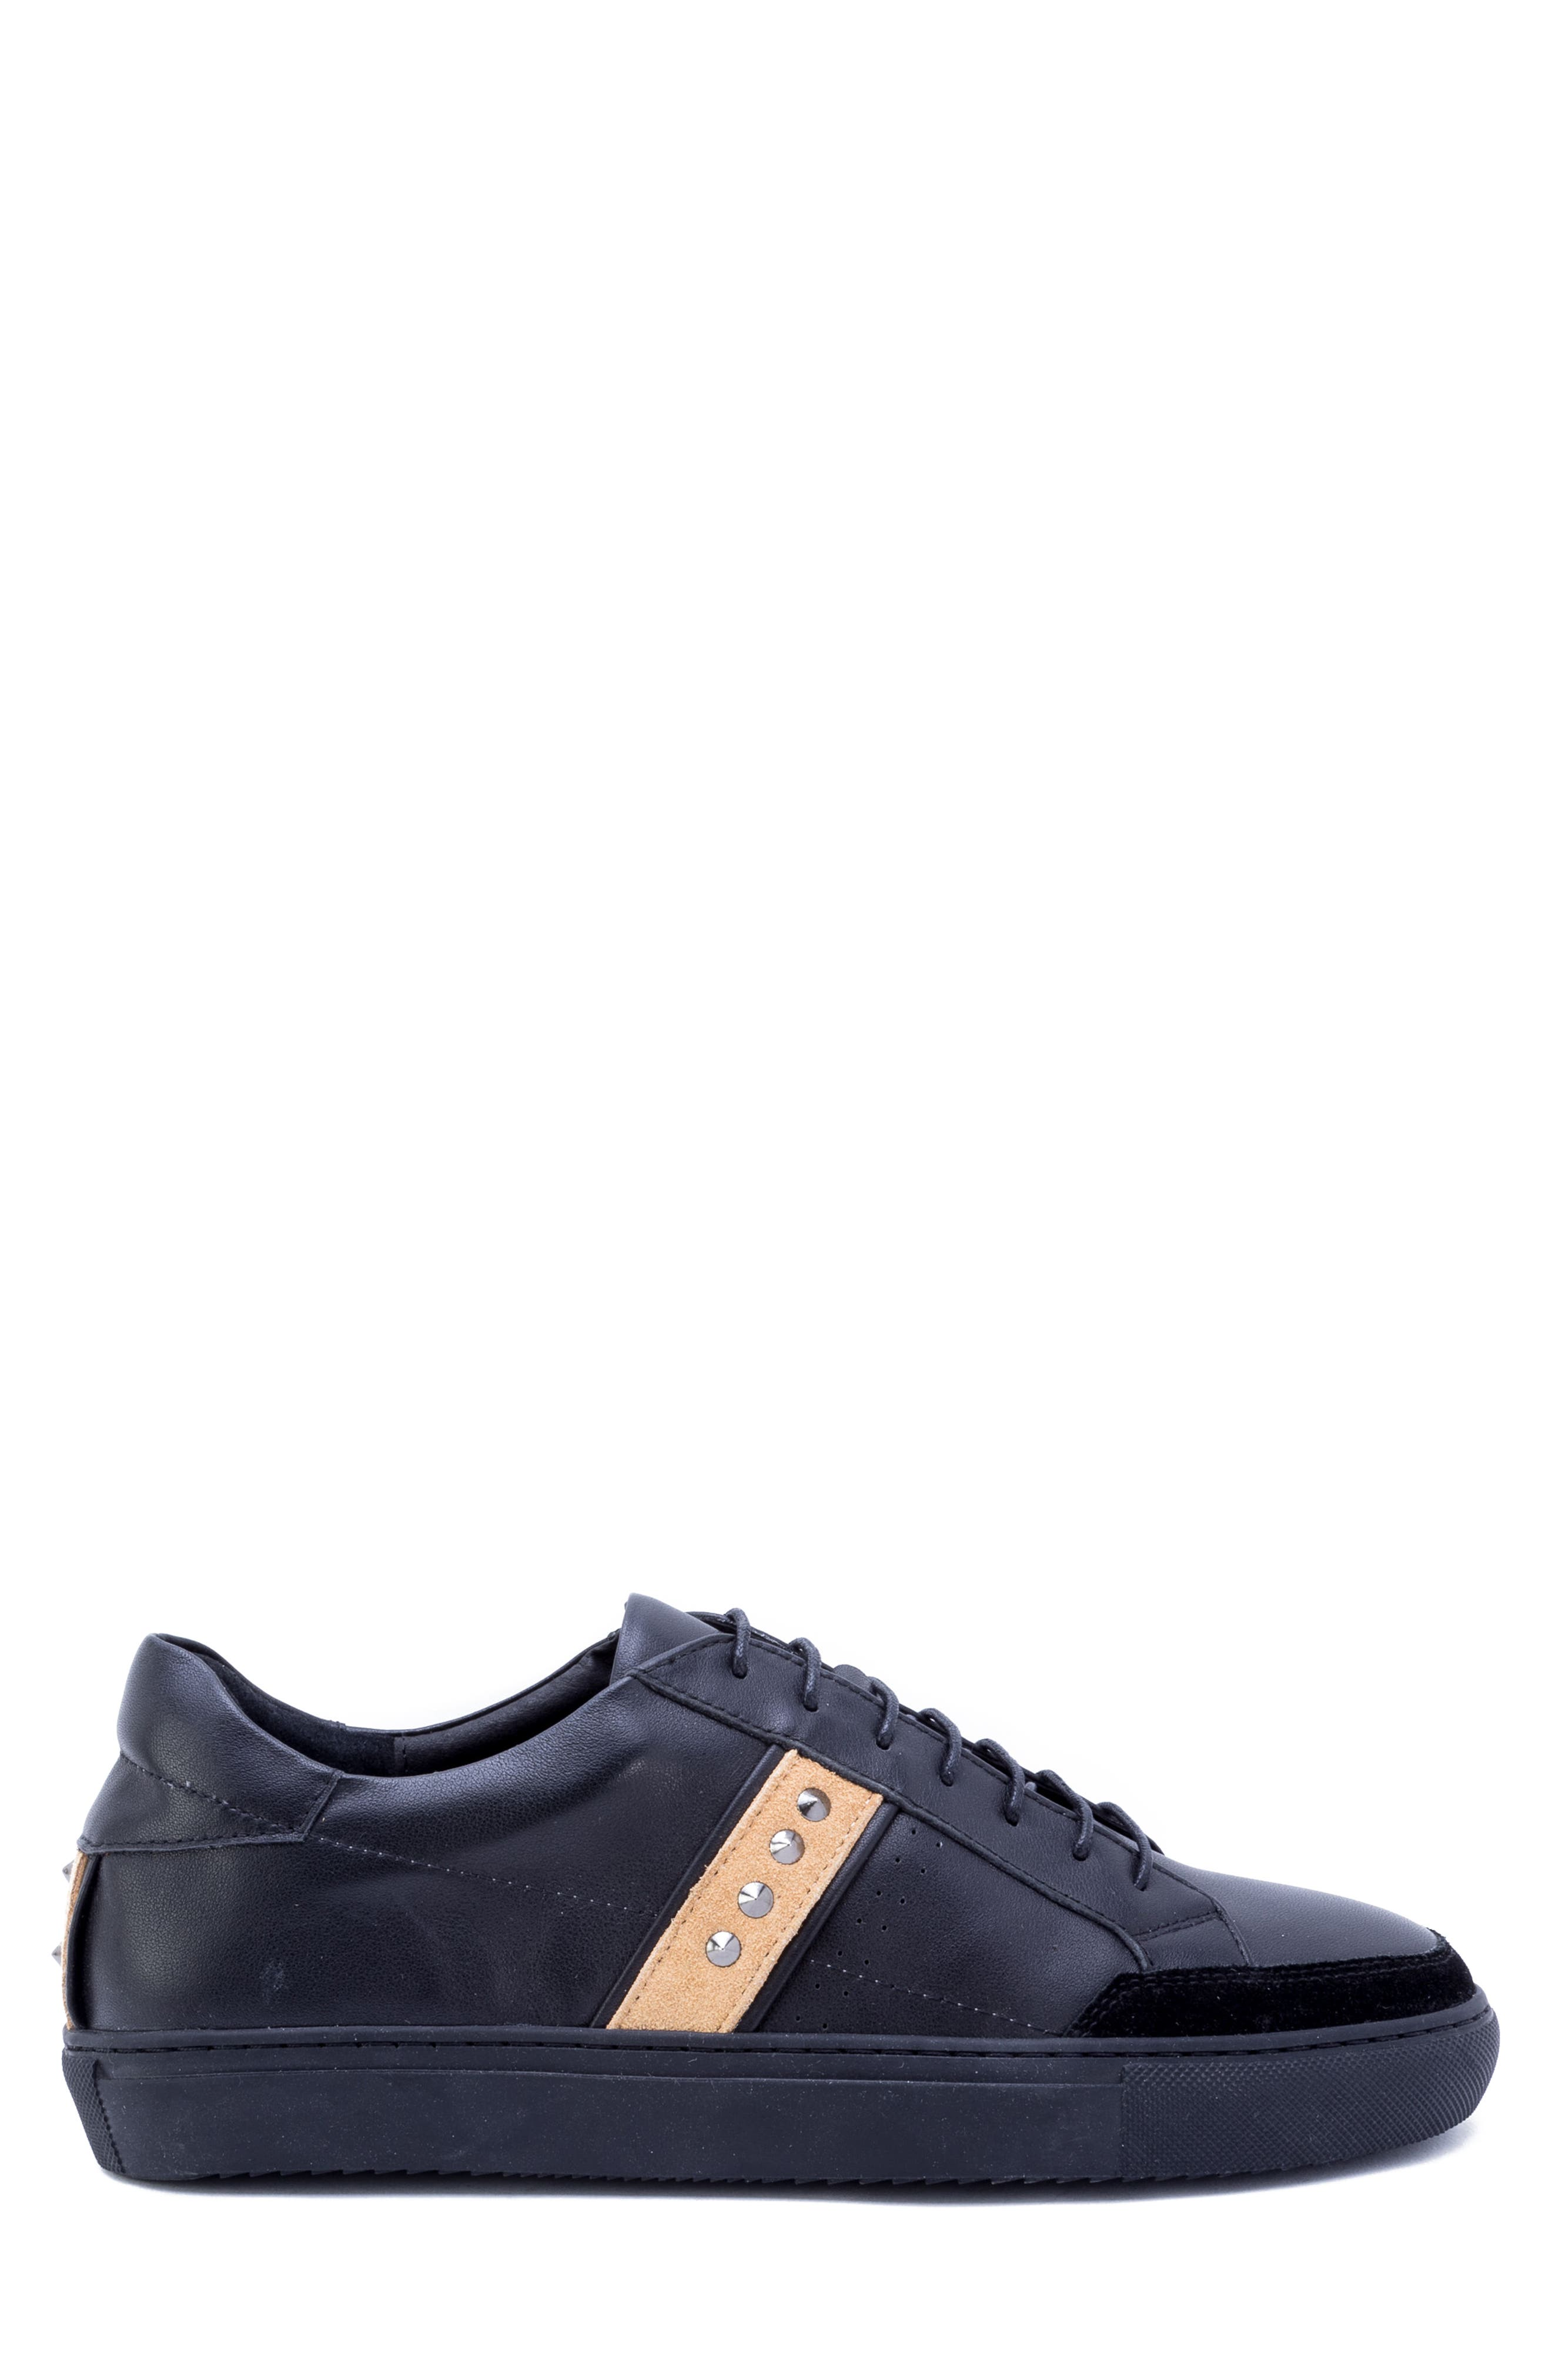 Connery Sneaker,                             Alternate thumbnail 3, color,                             BLACK LEATHER